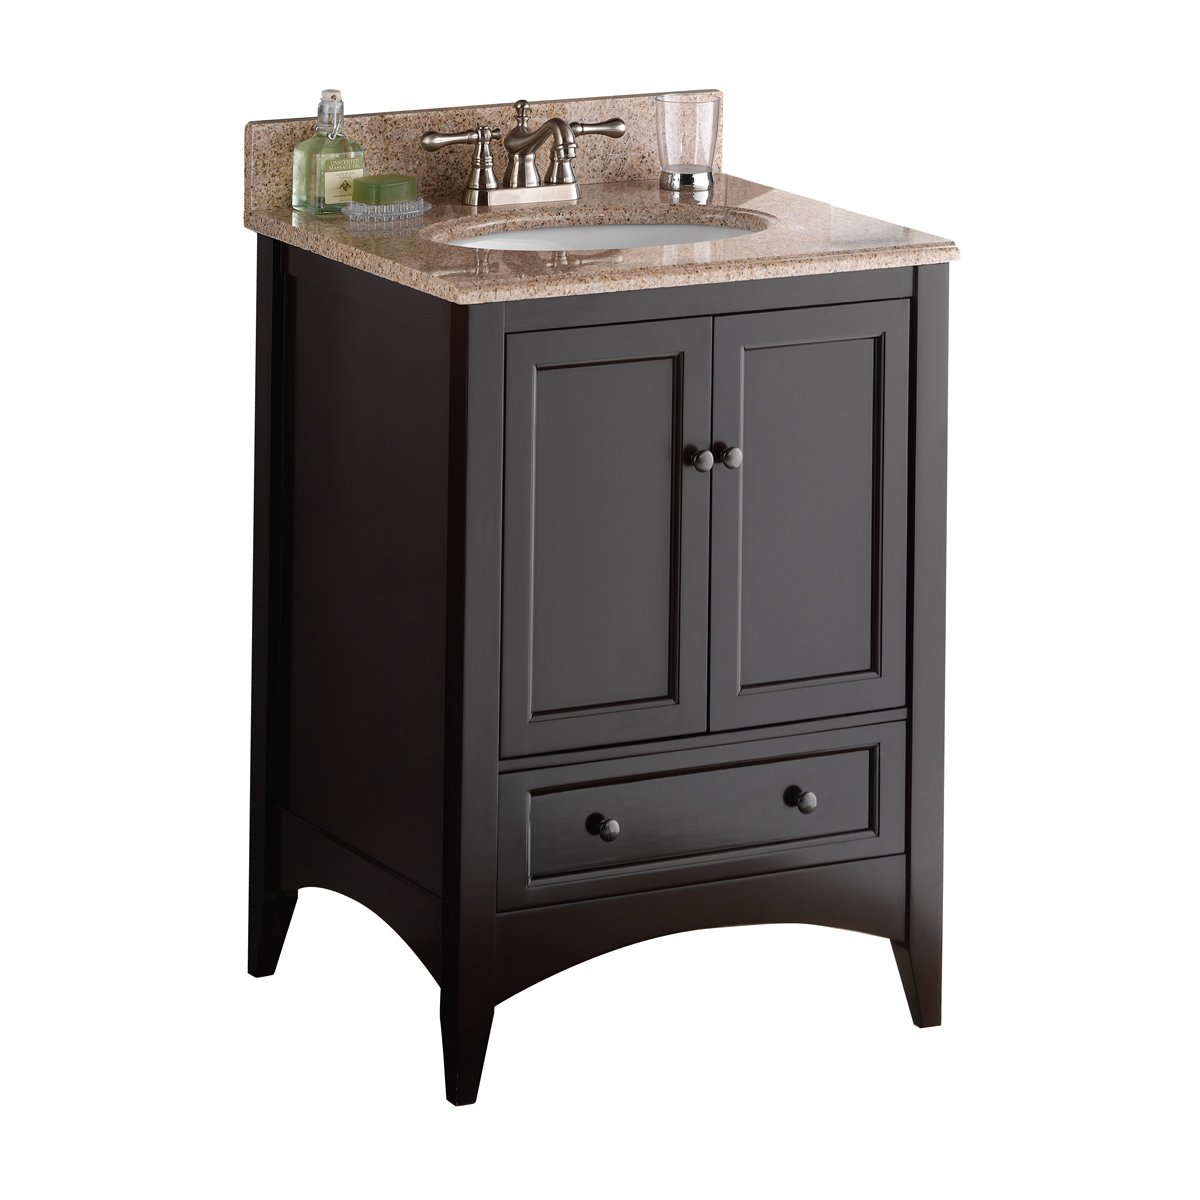 Attirant Foremost BECA2421D Berkshire 24 Inch Espresso Bathroom Vanity   Vanity  Sinks   Amazon.com